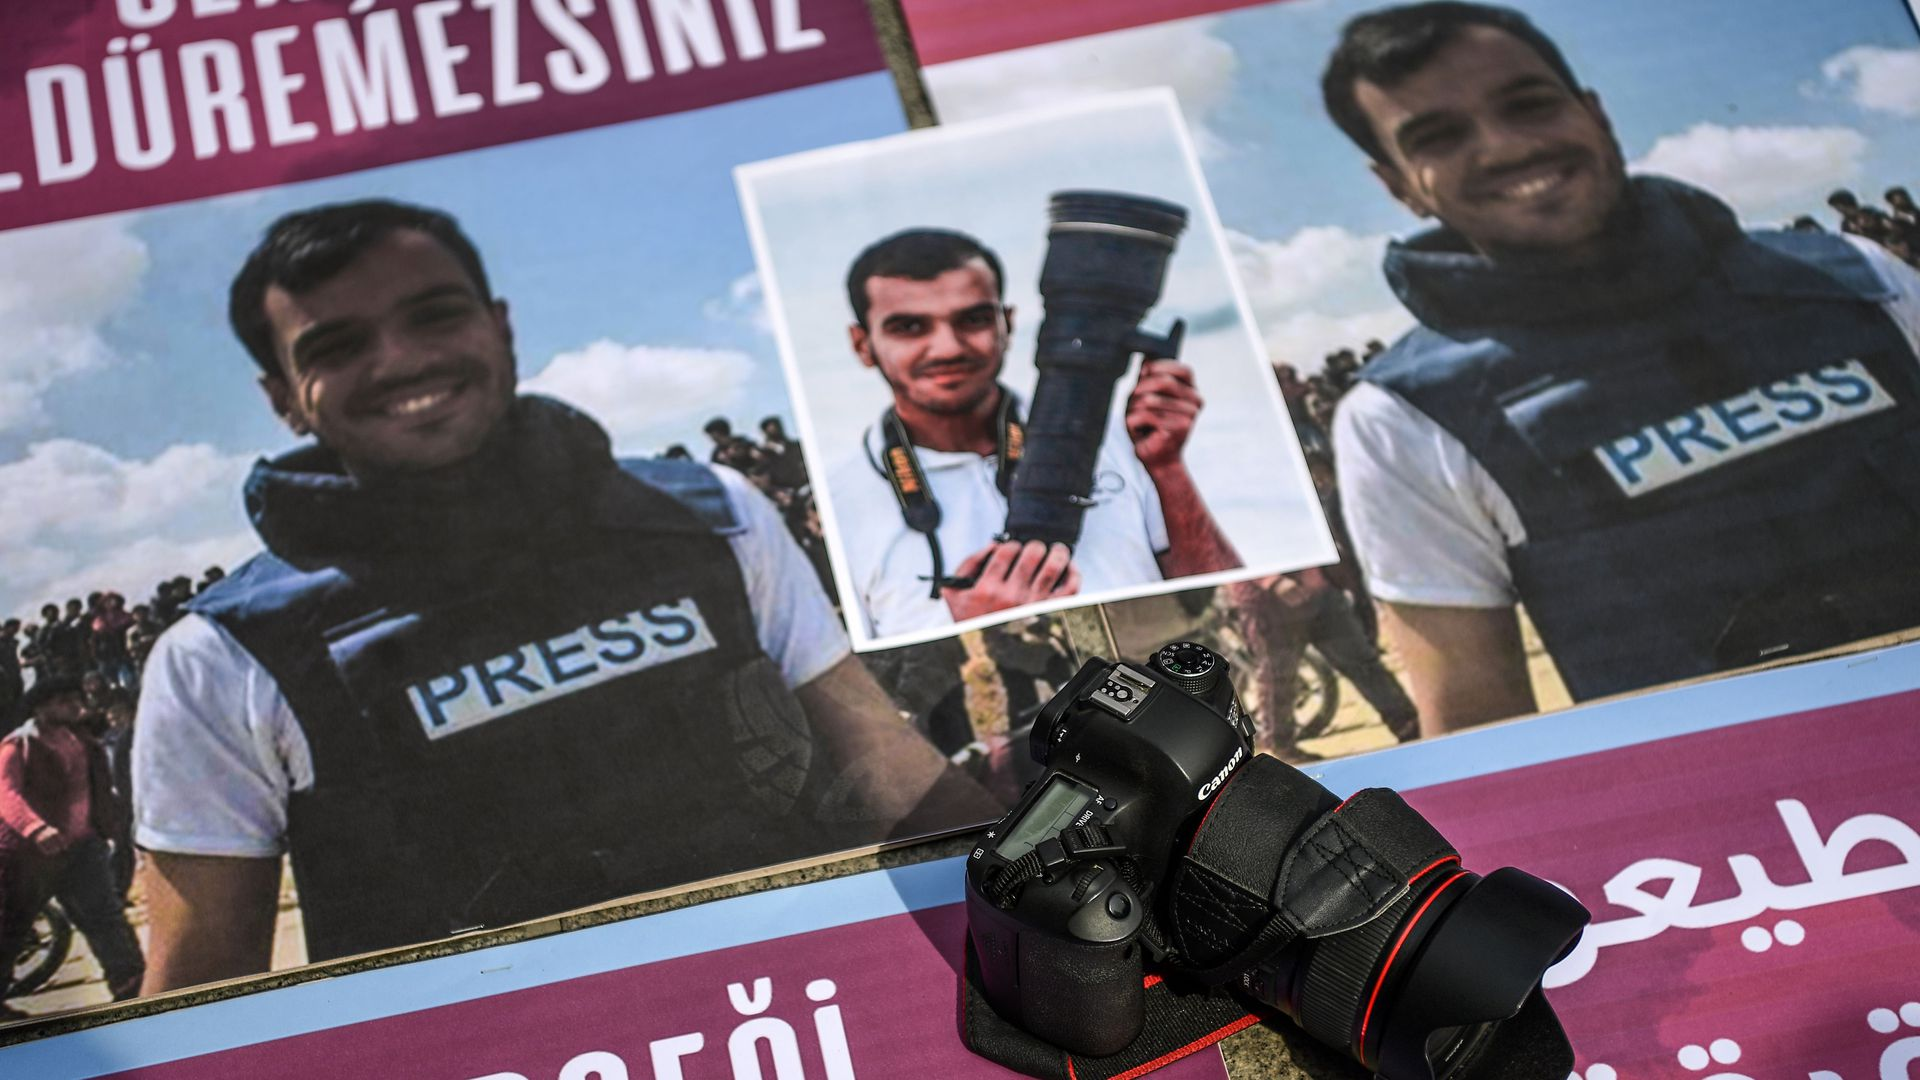 People take part in a protest against the killing of a fellow journalist Palestinian Yasser Murtaja